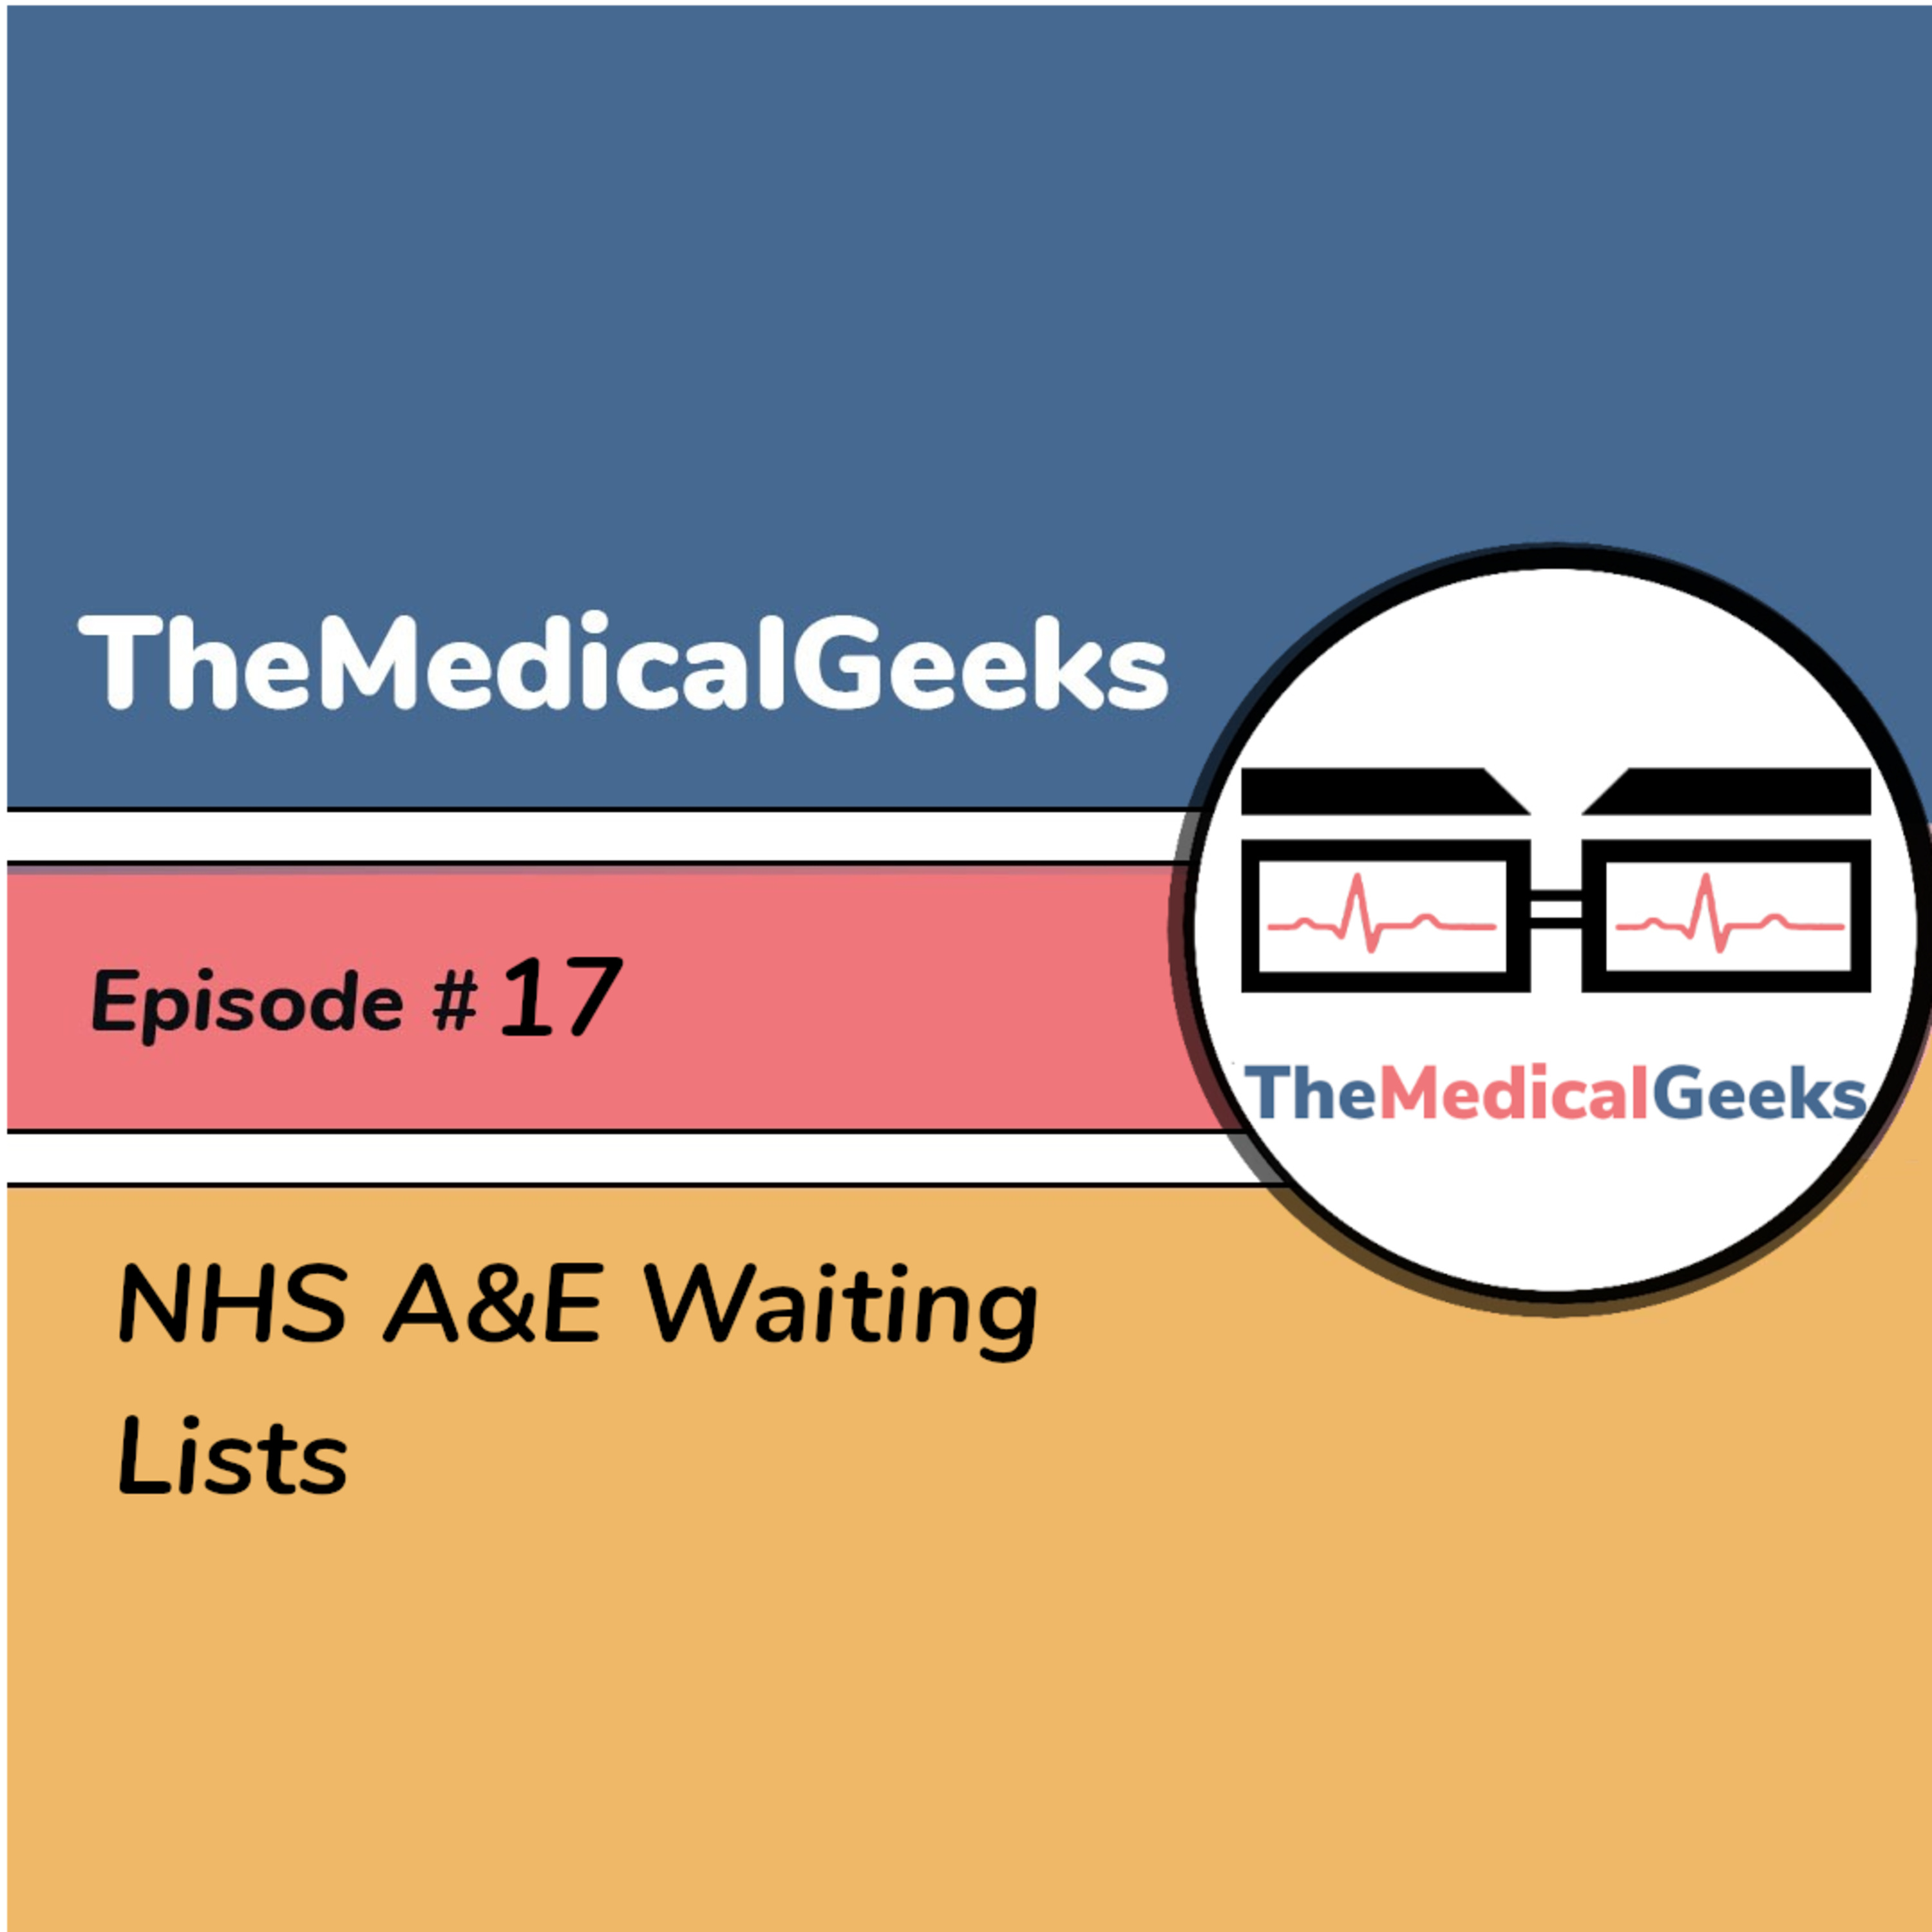 #17 Episode 17: NHS A&E Waiting Times